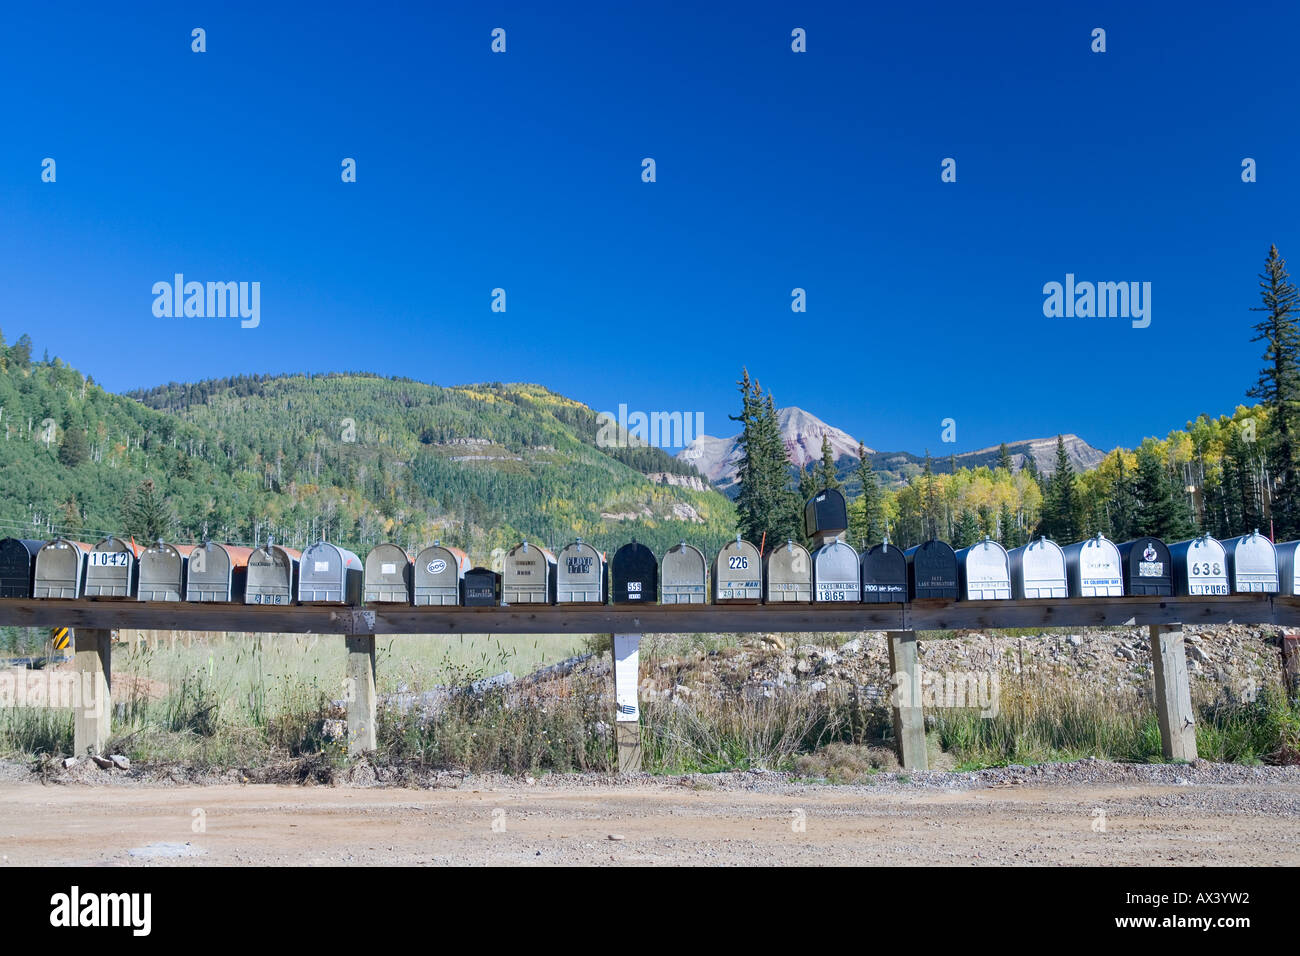 Row of postal mail boxes in rural Colorado, USA. - Stock Image